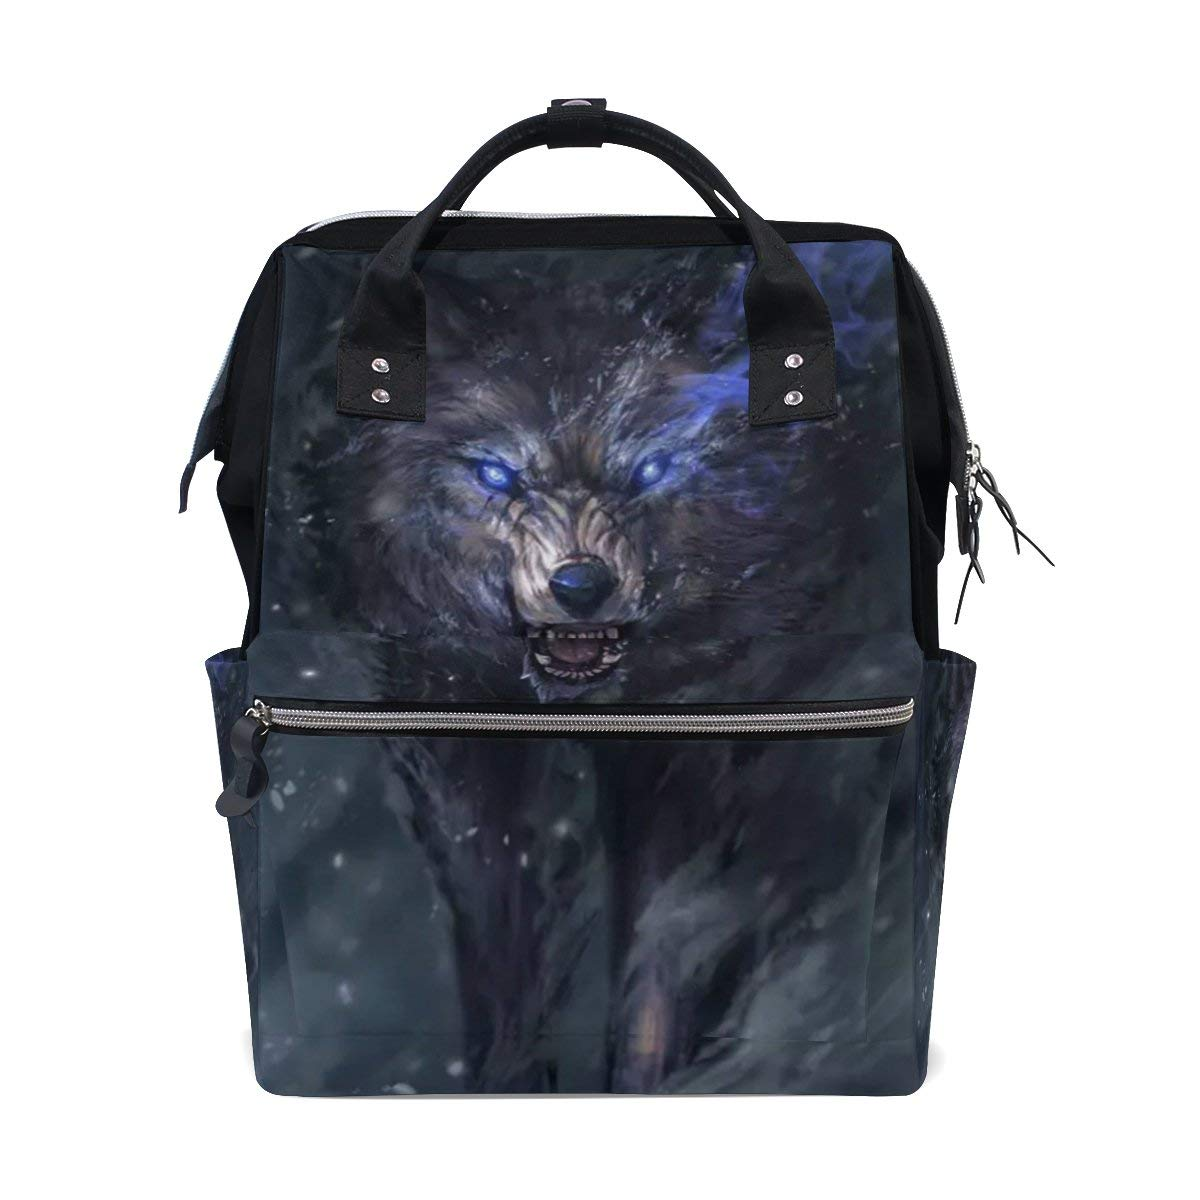 4ffdea896ac9 Cheap Backpack Wolf, find Backpack Wolf deals on line at Alibaba.com